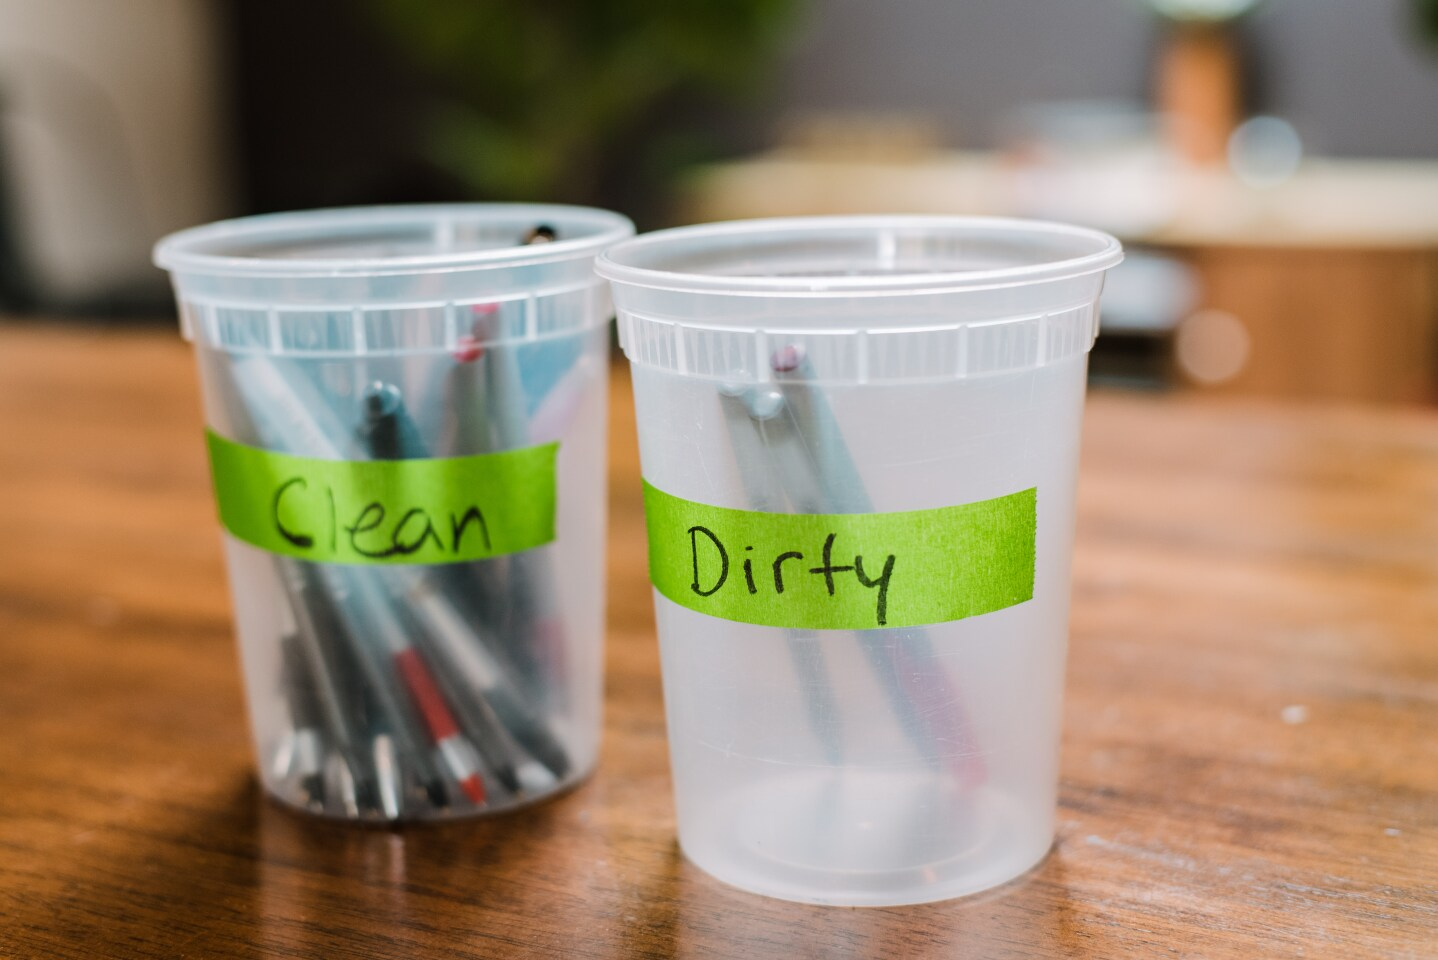 Sterilized pens are cleaned after every use at Donna Jean vegan restaurant in Bankers Hill.